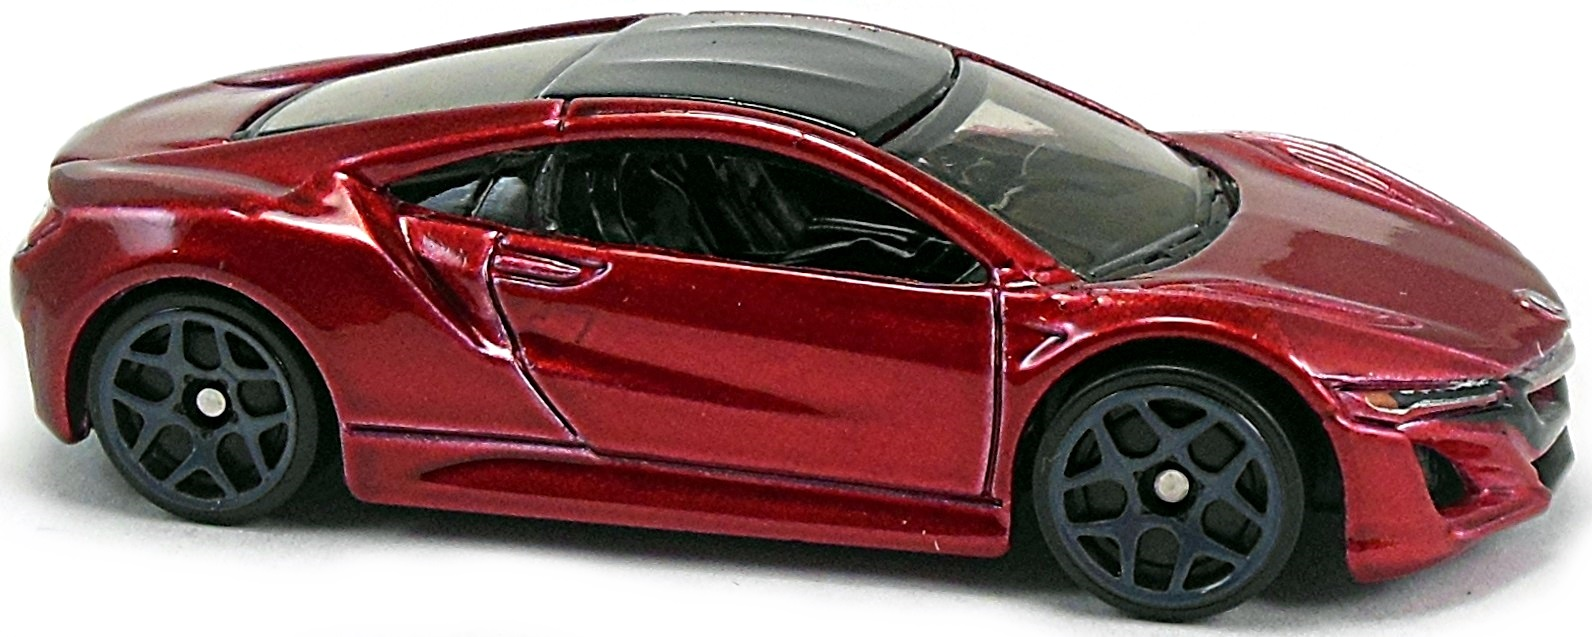 17 Acura Nsx 67mm 2016 Hot Wheels Newsletter